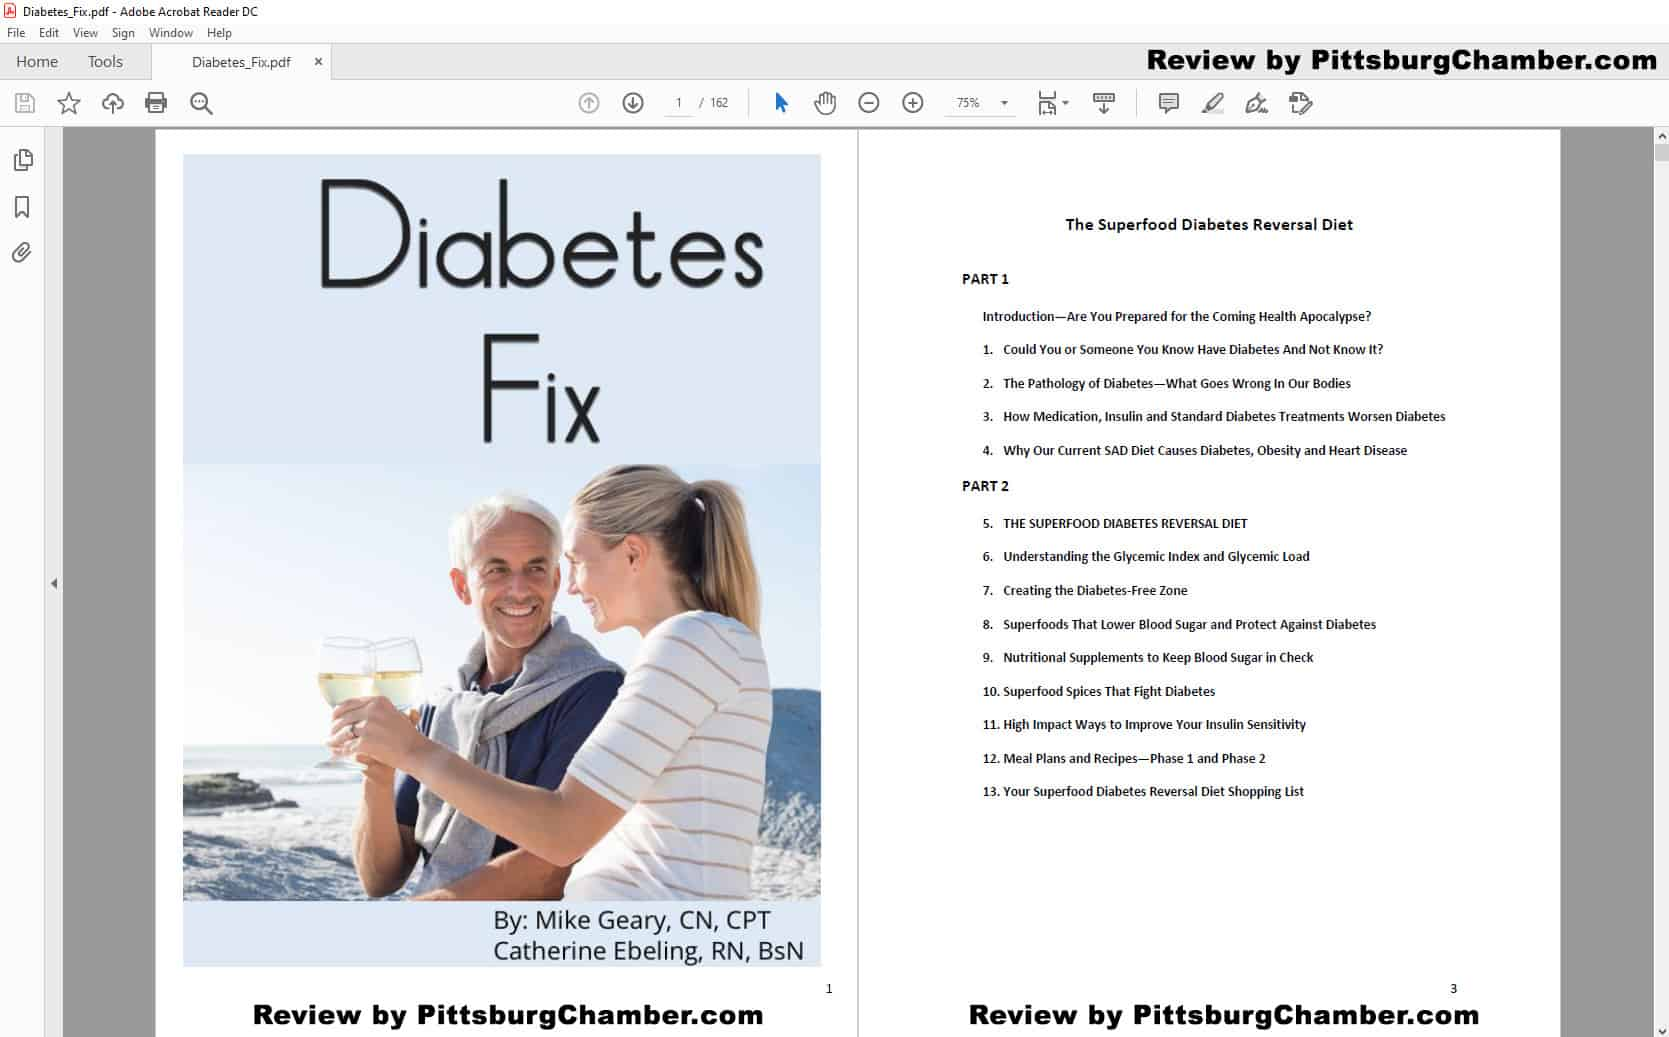 The Diabetes Fix Table of Contents